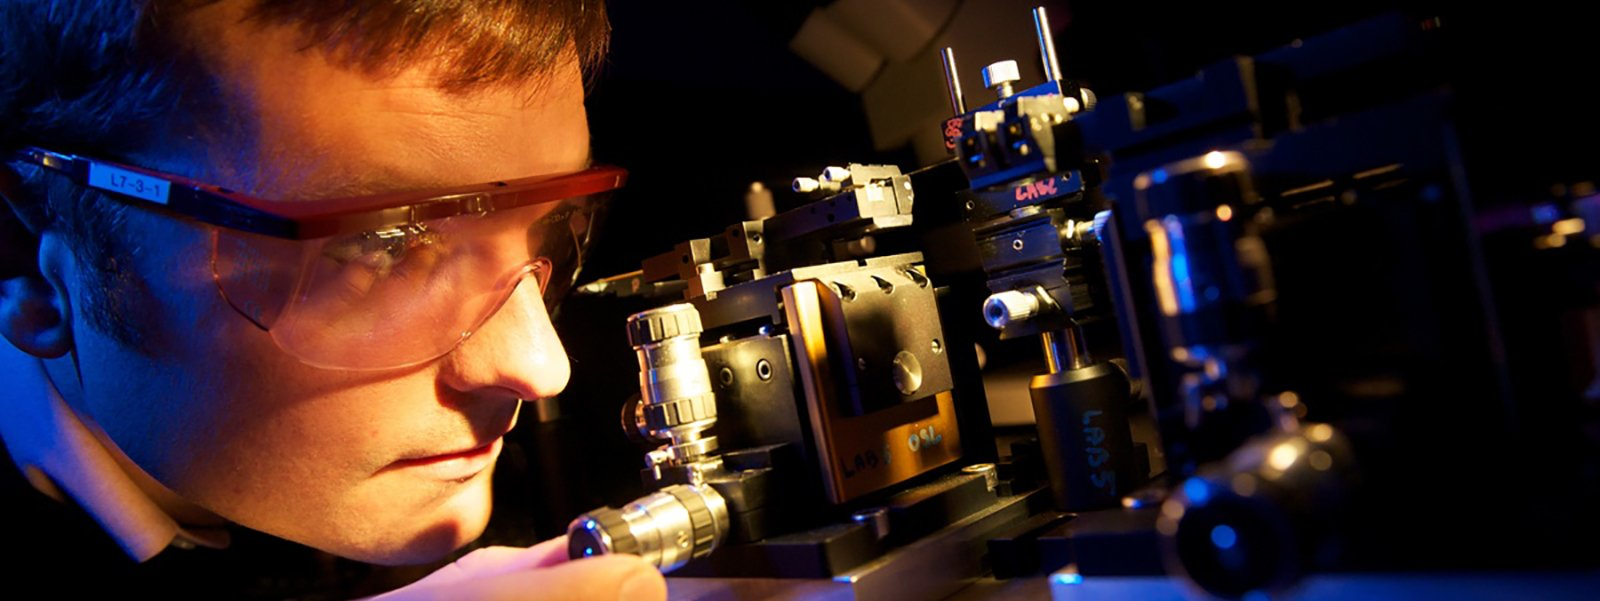 Student setting up a laser rig